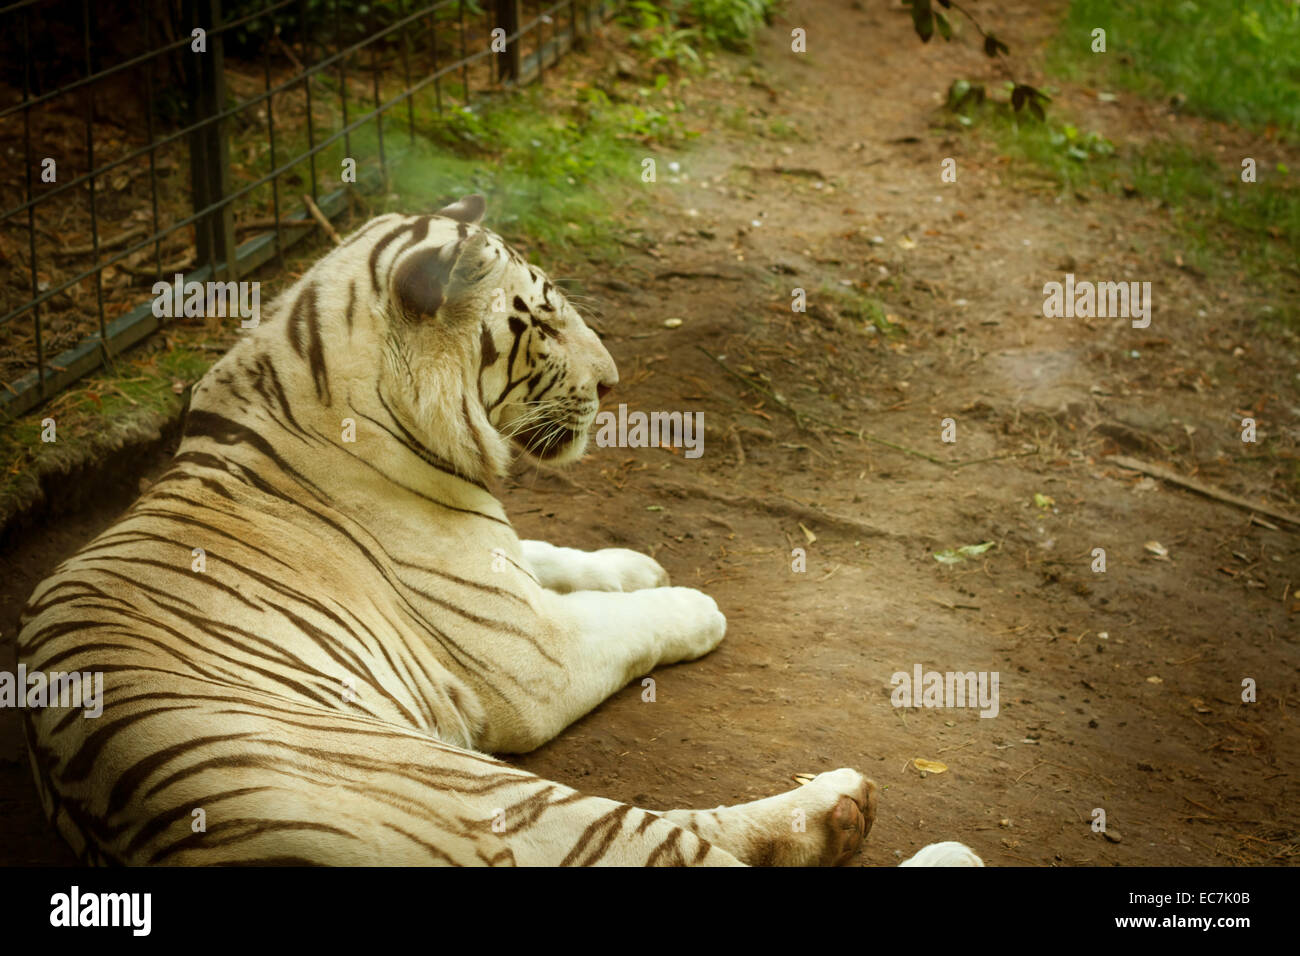 Le zoo parc beauval rare tigre blanc, France. Photo Stock